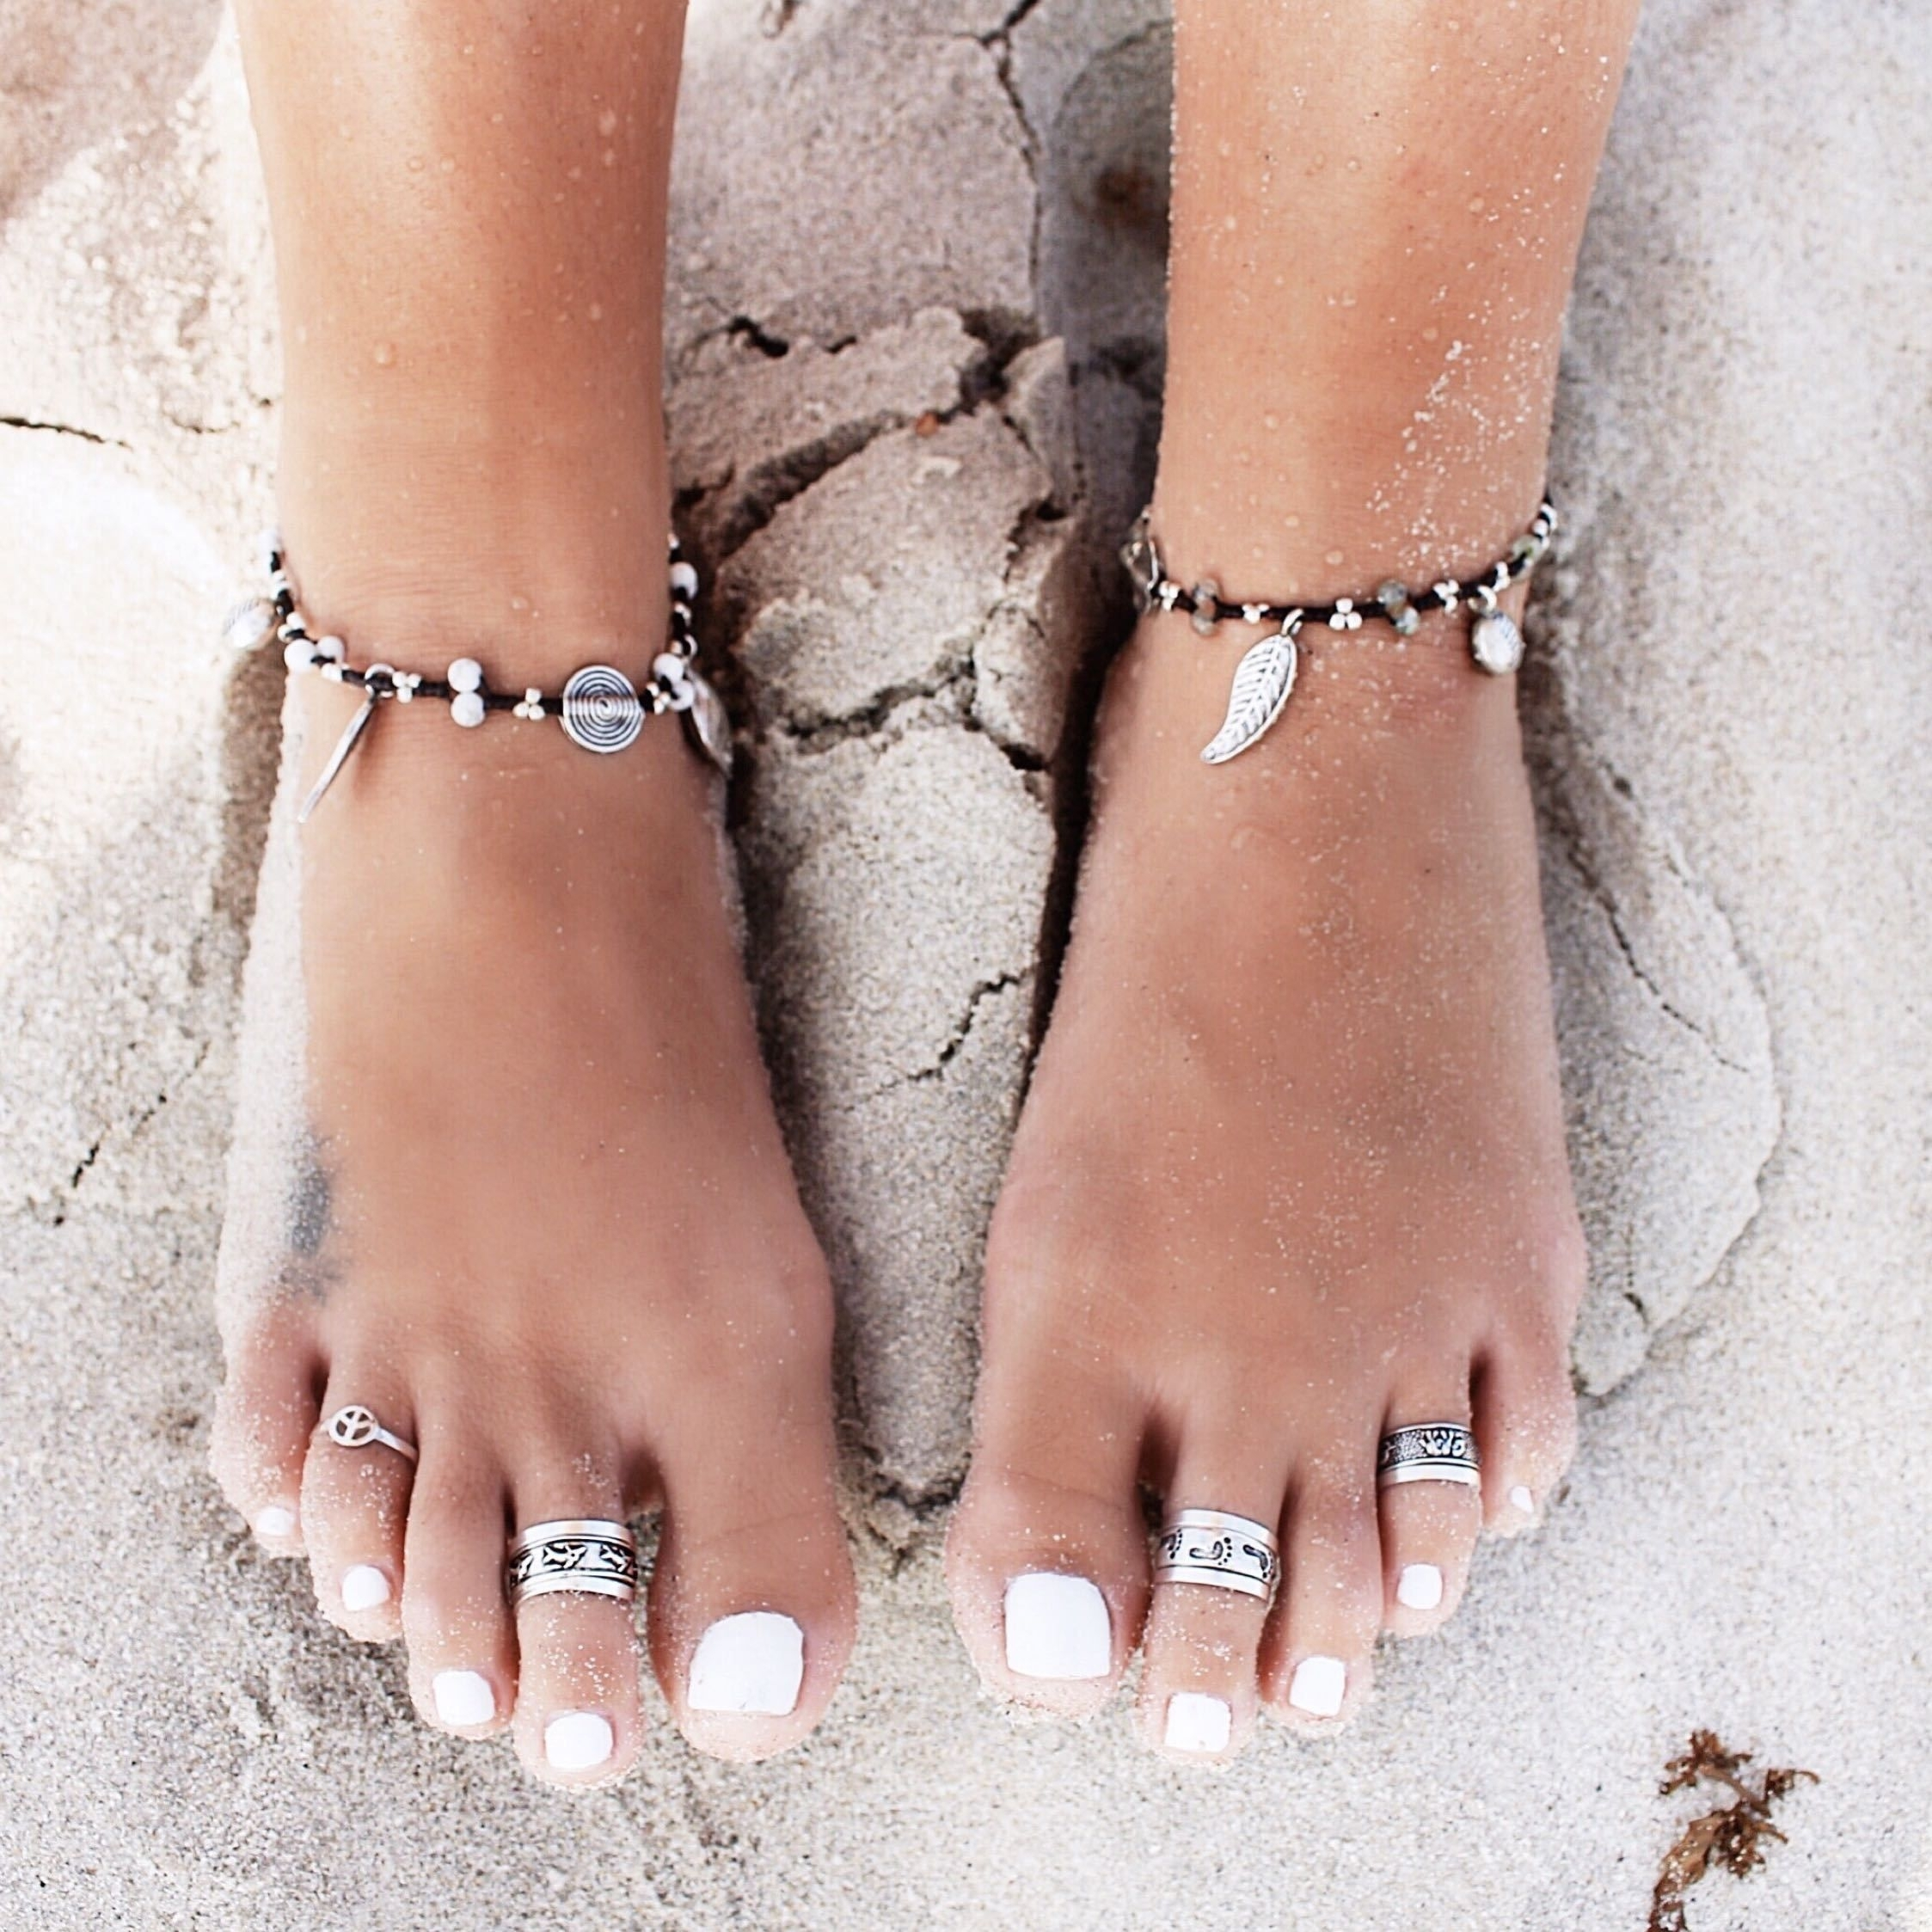 ≫∙∙Boho, Feathers + Gypsy Spirit∙∙≪ | Nails | Pinterest With Most Current White Gold Toe Rings (View 1 of 15)